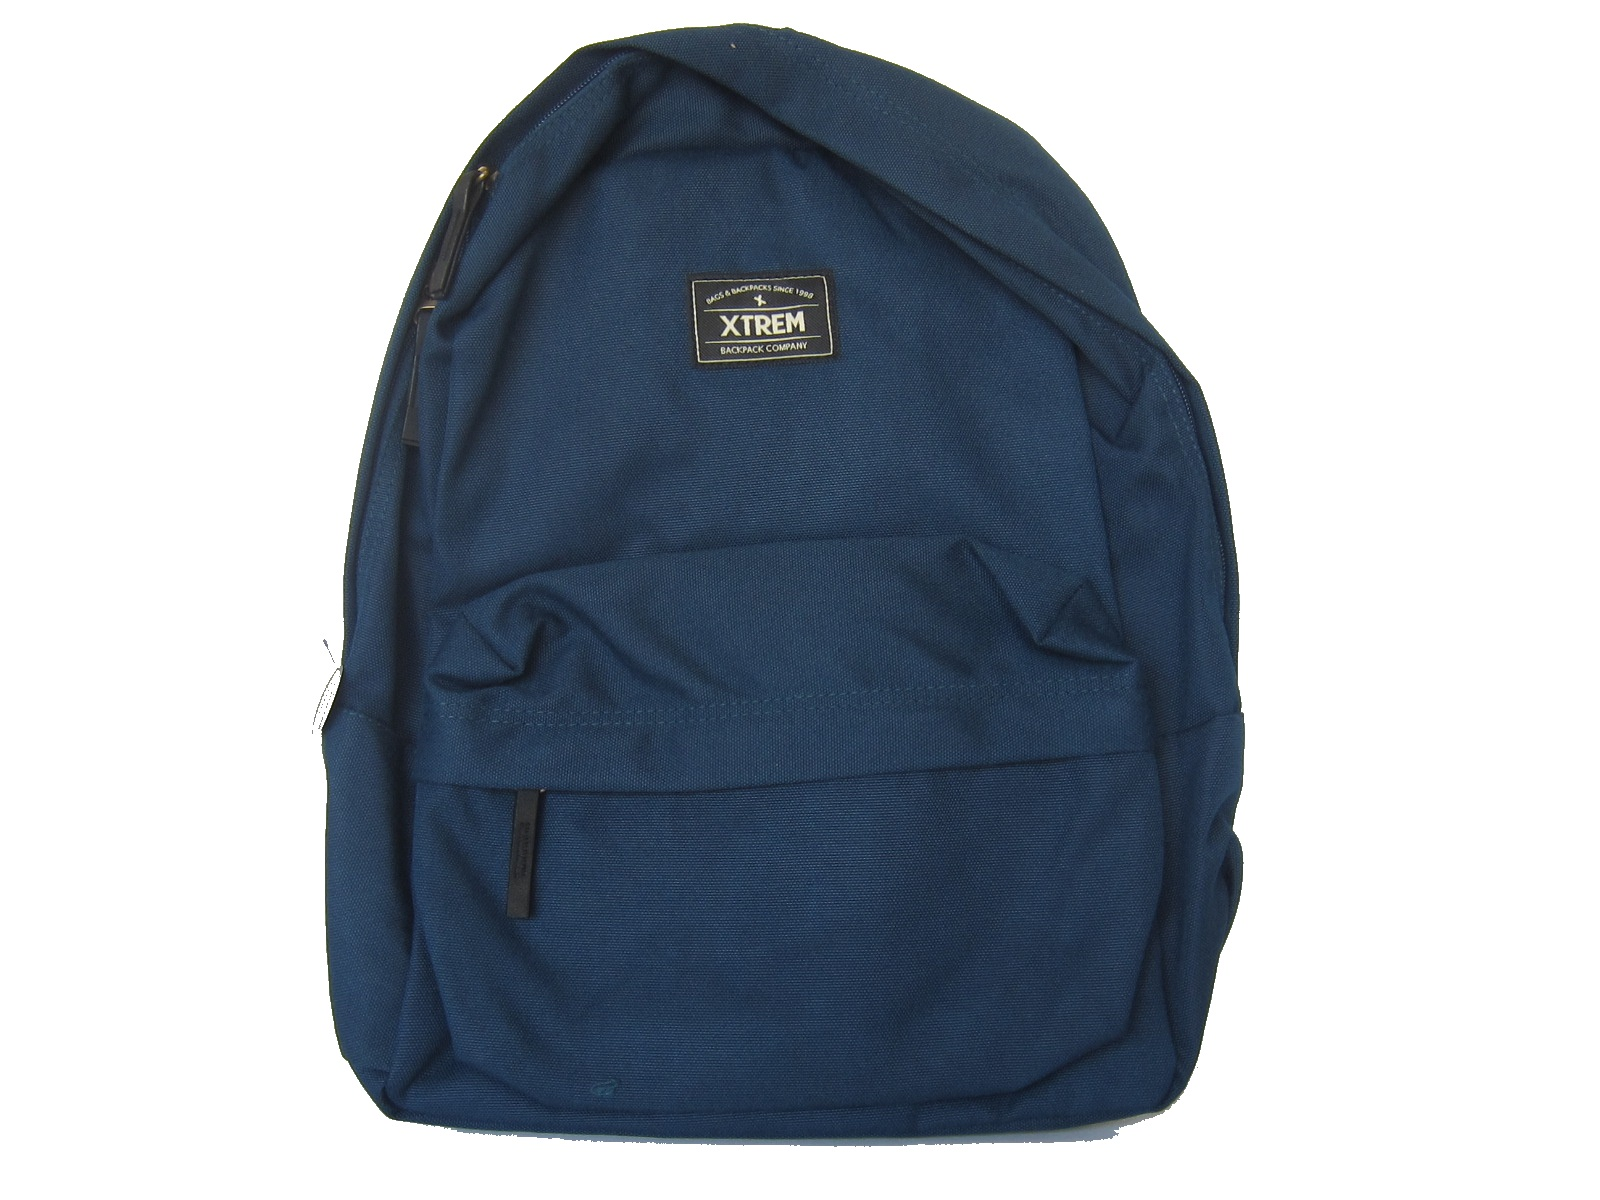 BONDY 710 BACKPACK NAVAL 87571-L219